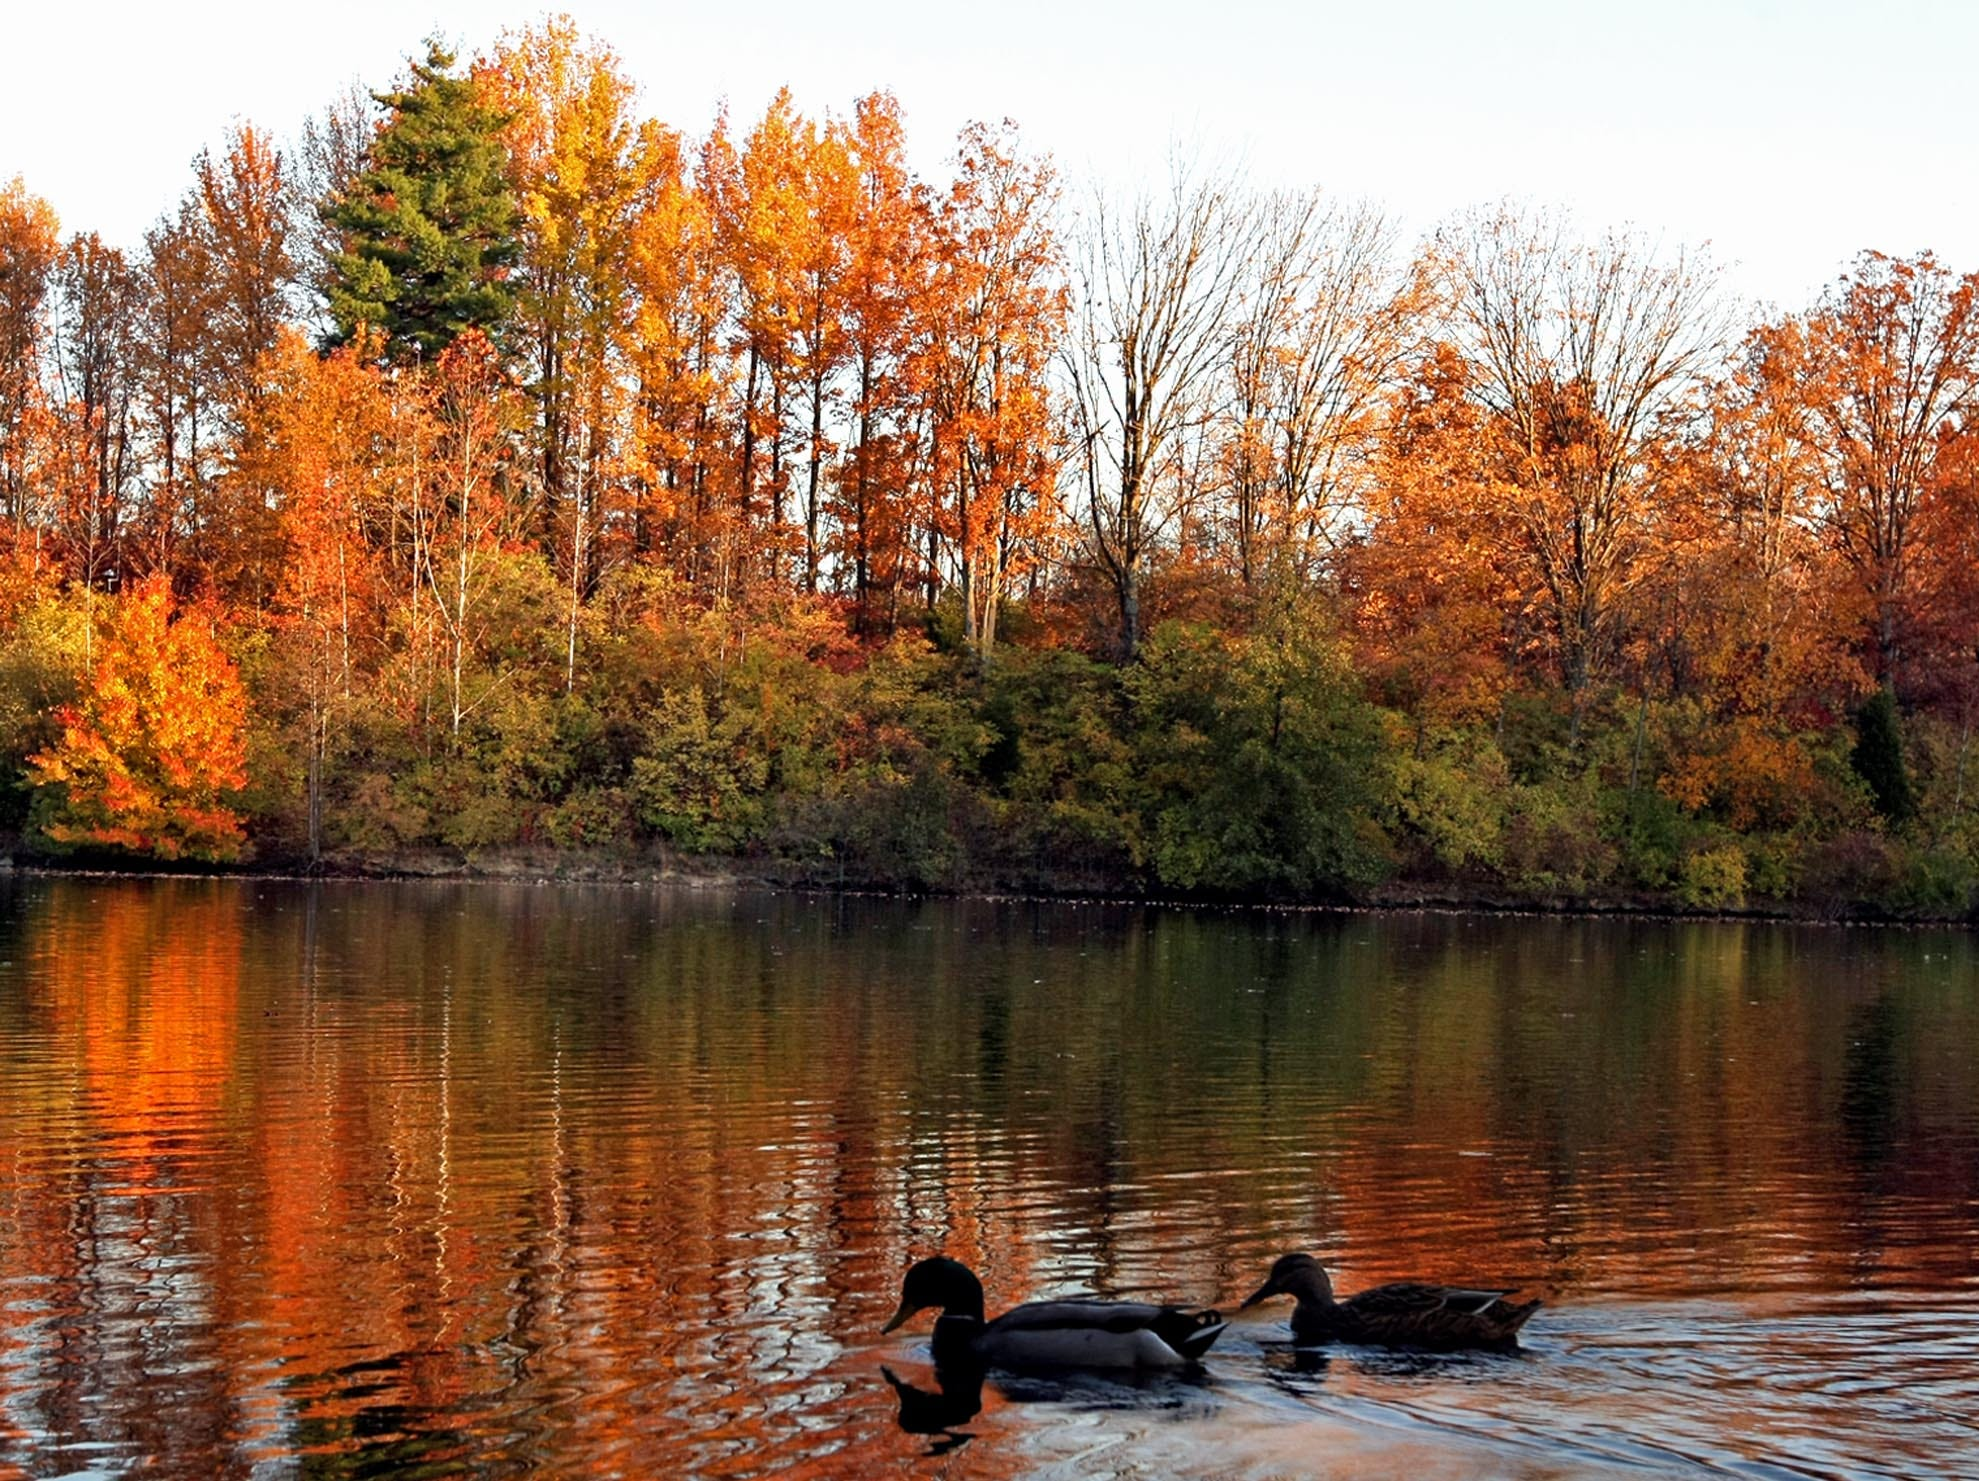 Ducks move along in Sharon Woods park lake in Sharonville in November 2008 as the sun lights up the fall colors along its bank.